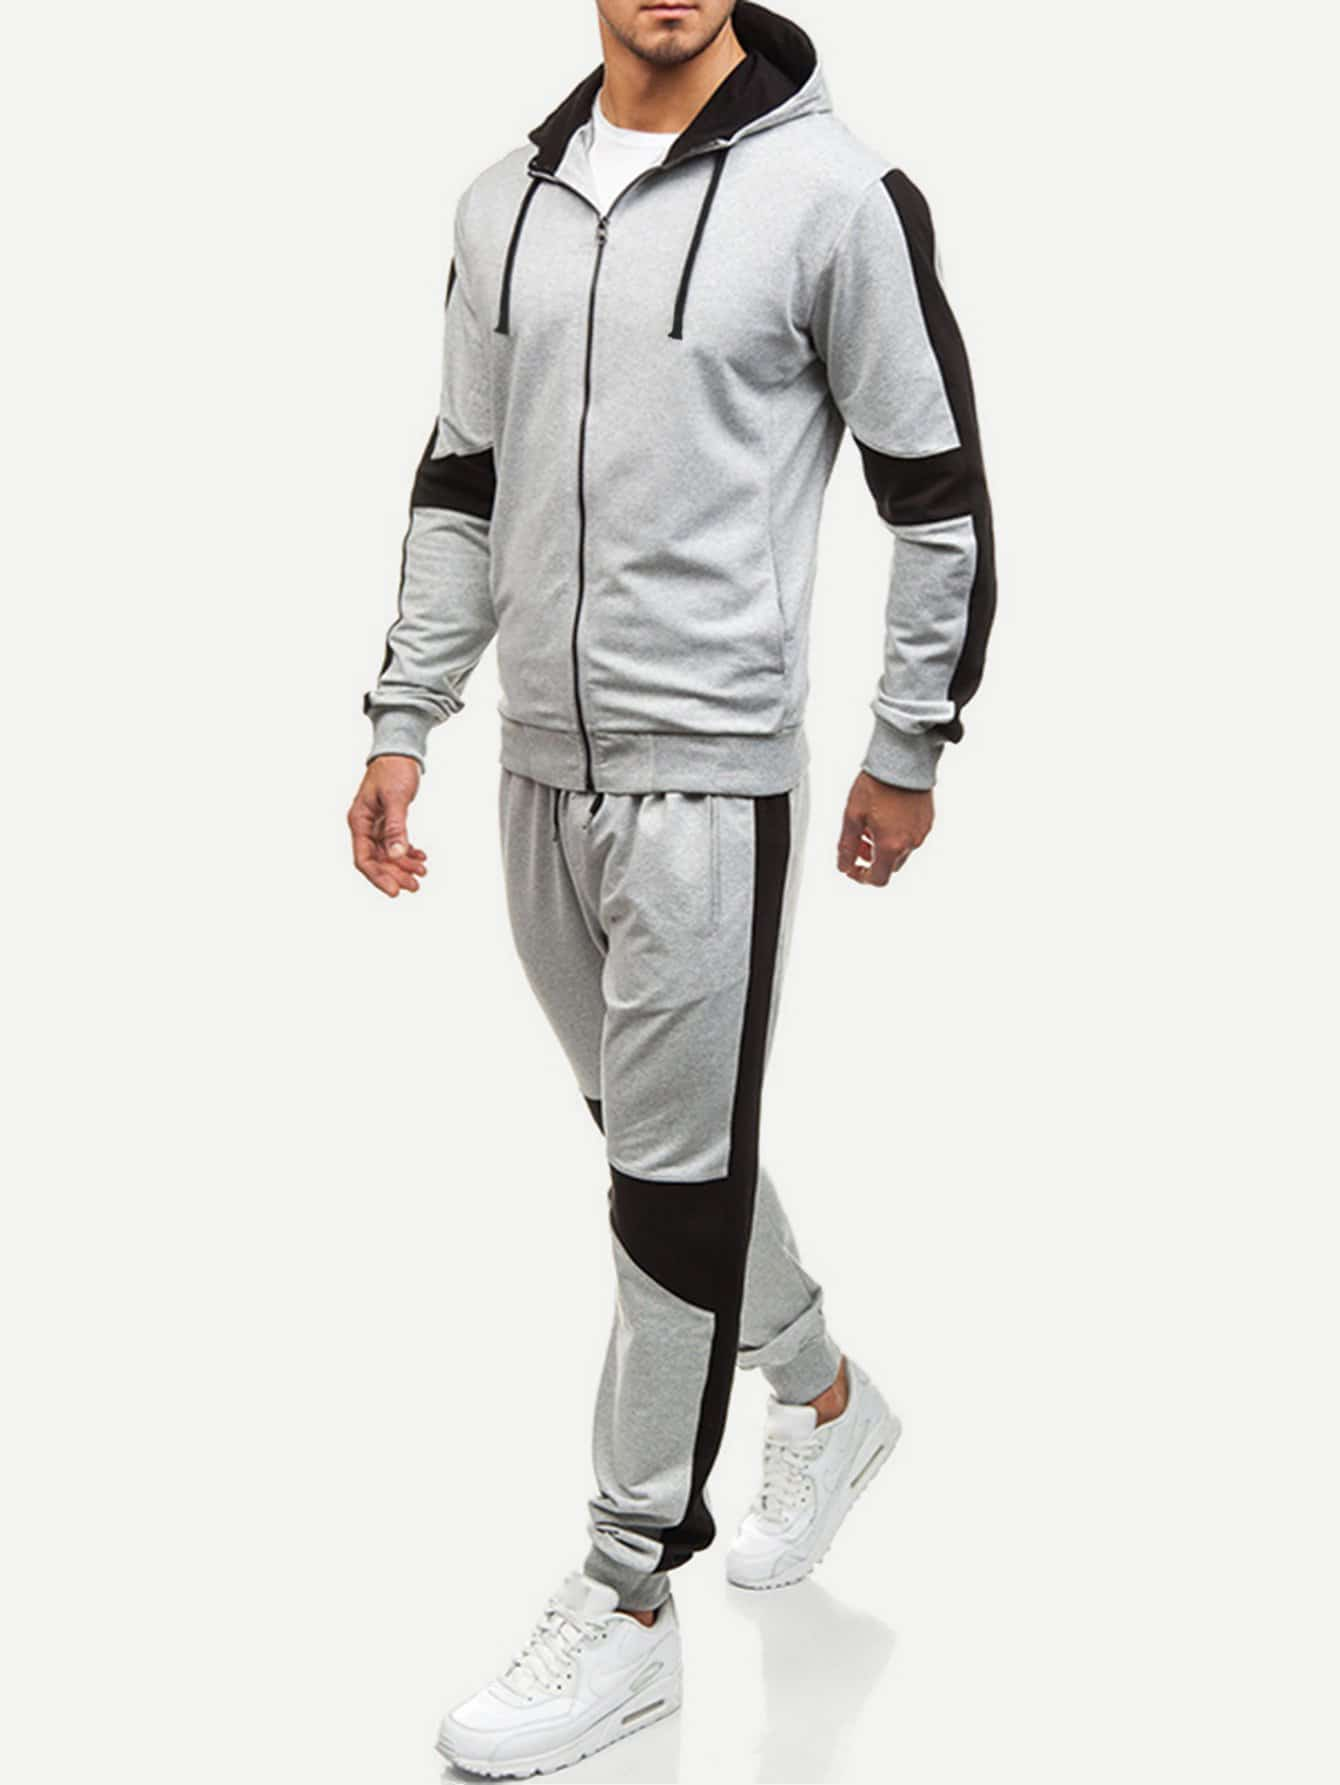 Men Cut And Sew Panel Hooded Sweatshirt With Drawstring Pants Men Cut And Sew Panel Hooded Sweatshirt With Drawstring Pants